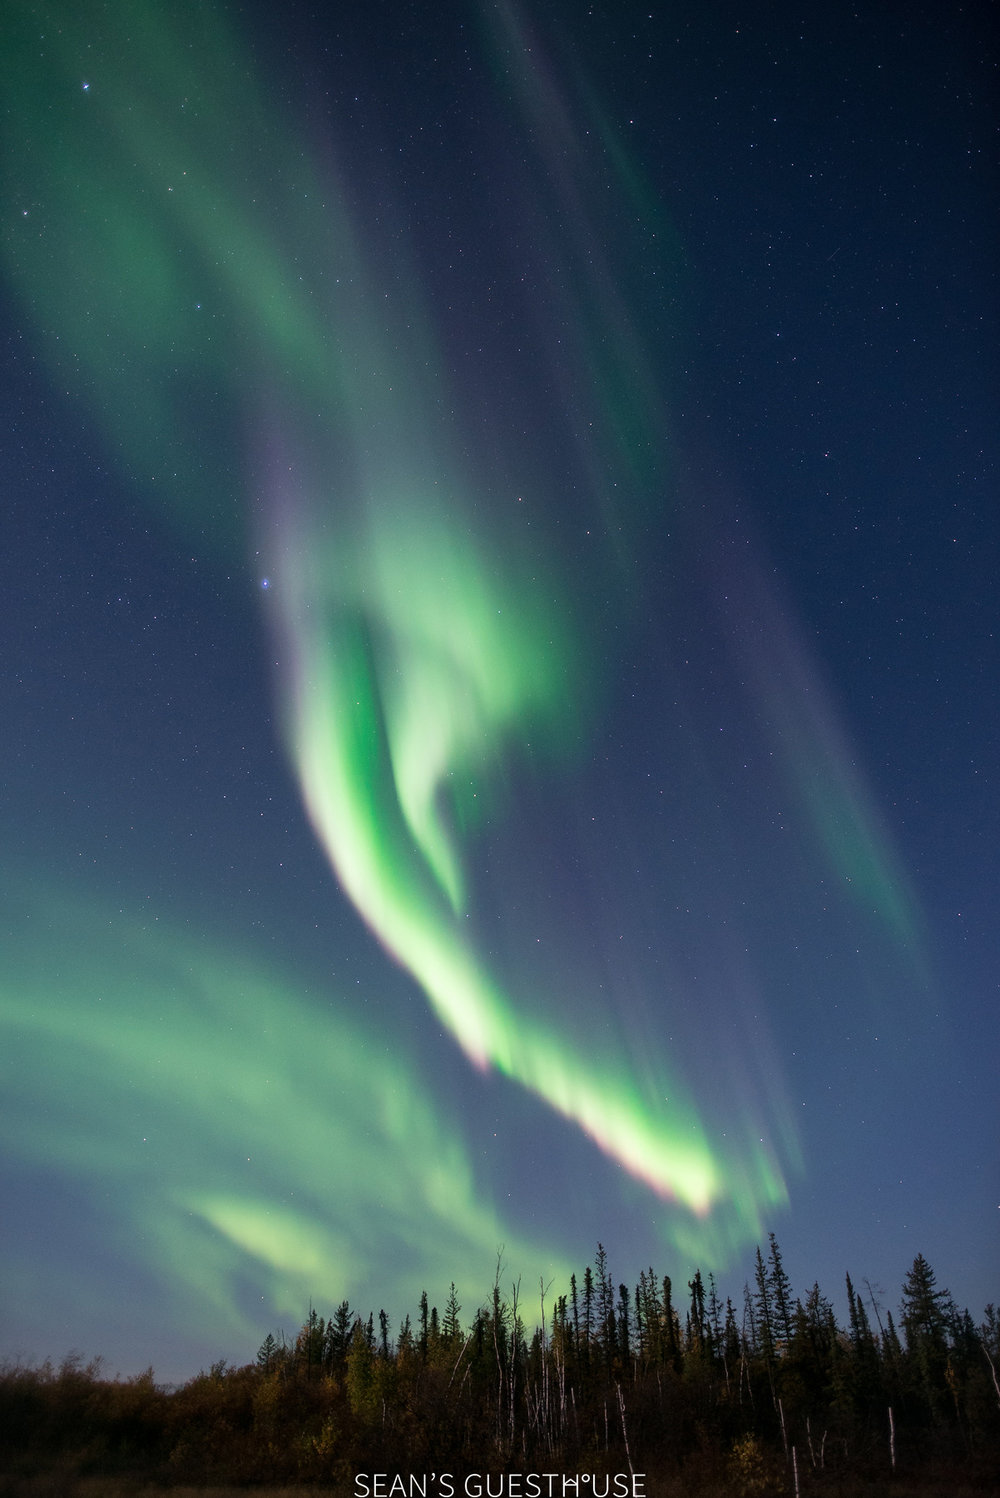 Sean's Guesthouse - Yellowknife Northern Lights Tours - 4.jpg